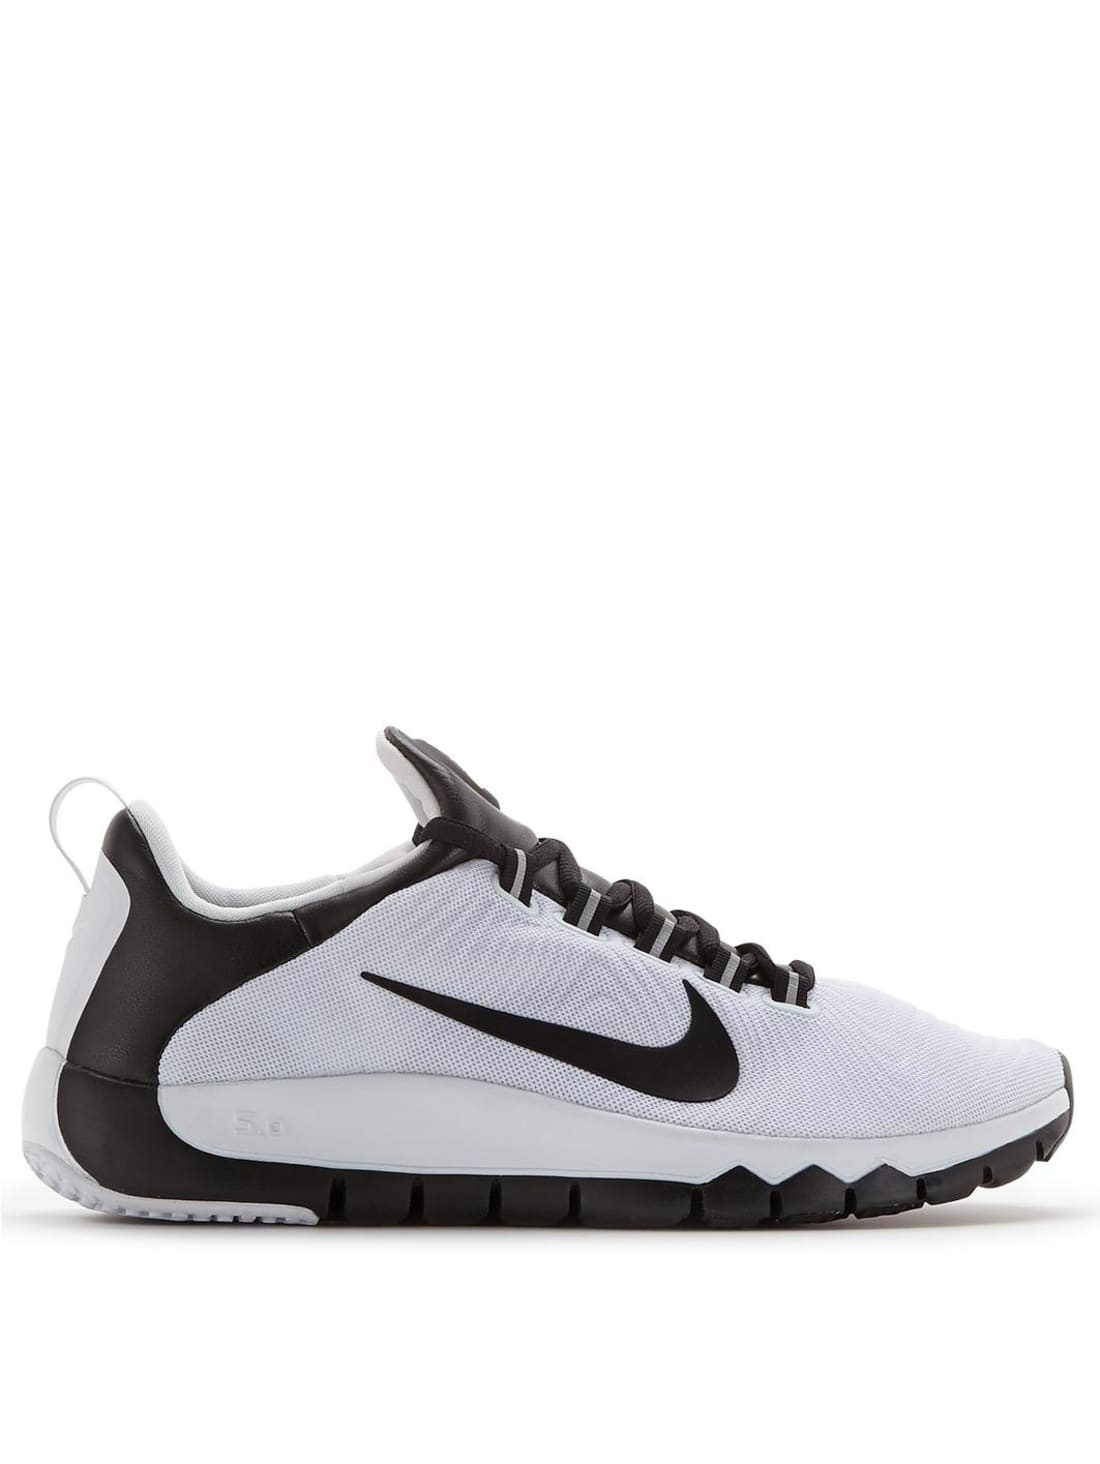 finest selection 9a0f6 bd2da Nike Free Trainer 5.0 V5 | Nike | Sole Collector